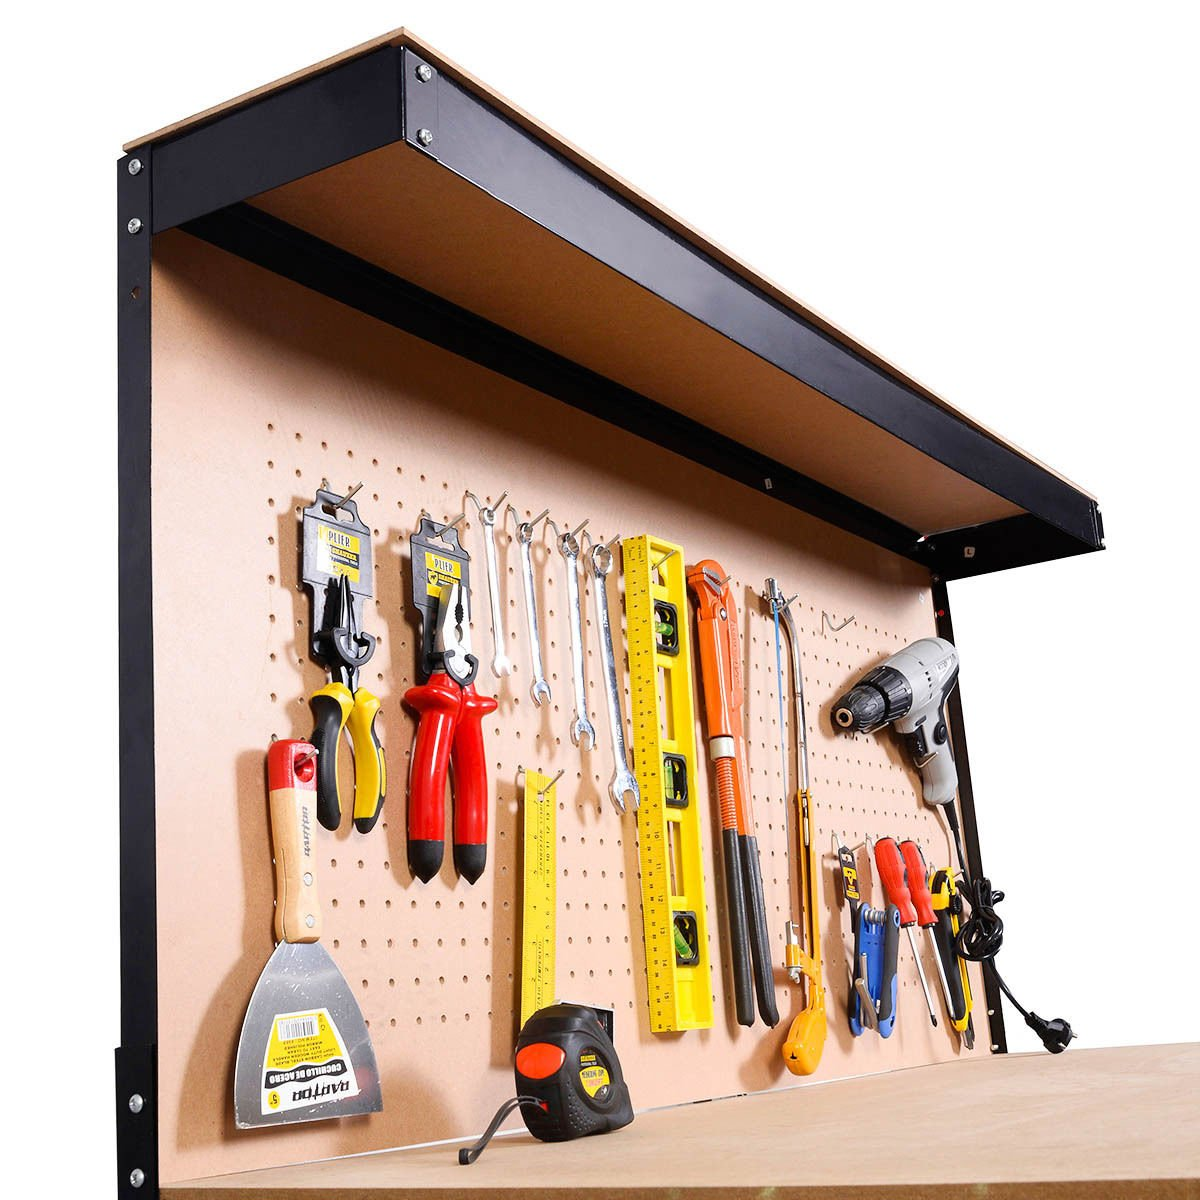 Work Bench Tool Storage Steel Frame Workshop Table W/ Drawer & Peg Board by Allblessings (Image #6)